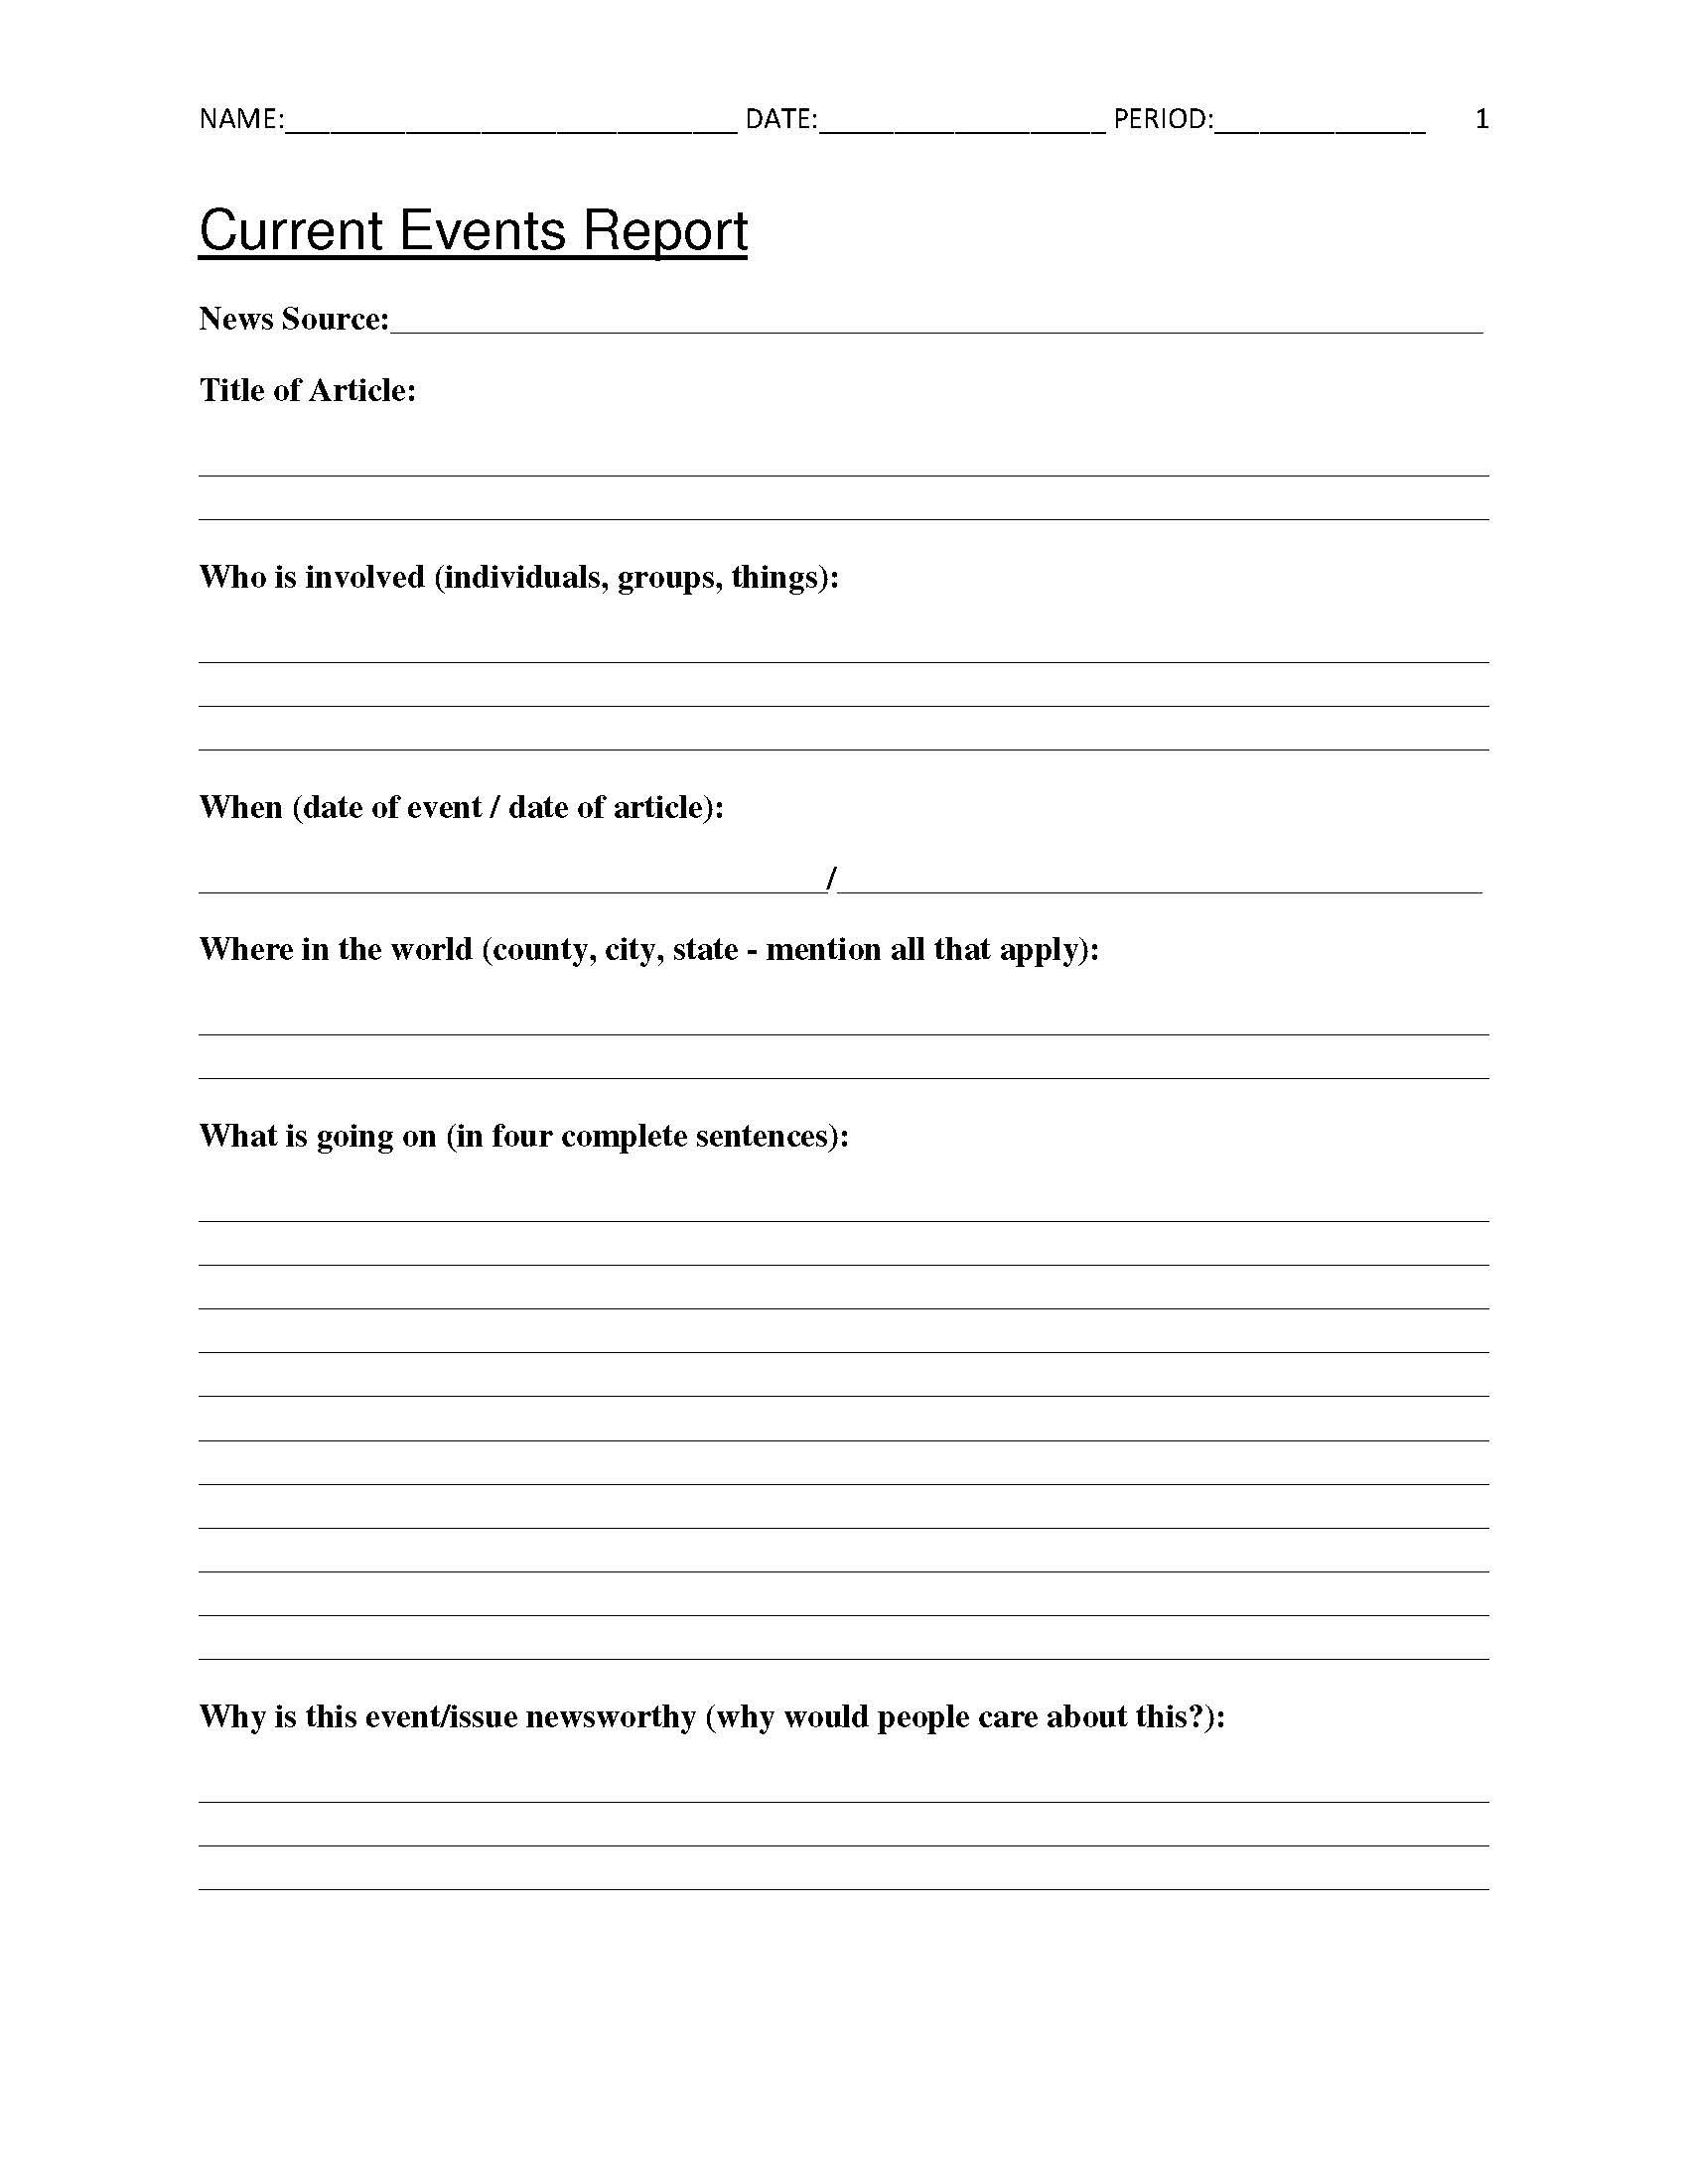 Free Current Events Report Worksheet For Classroom Teachers - Free Printable Book Report Forms For Elementary Students